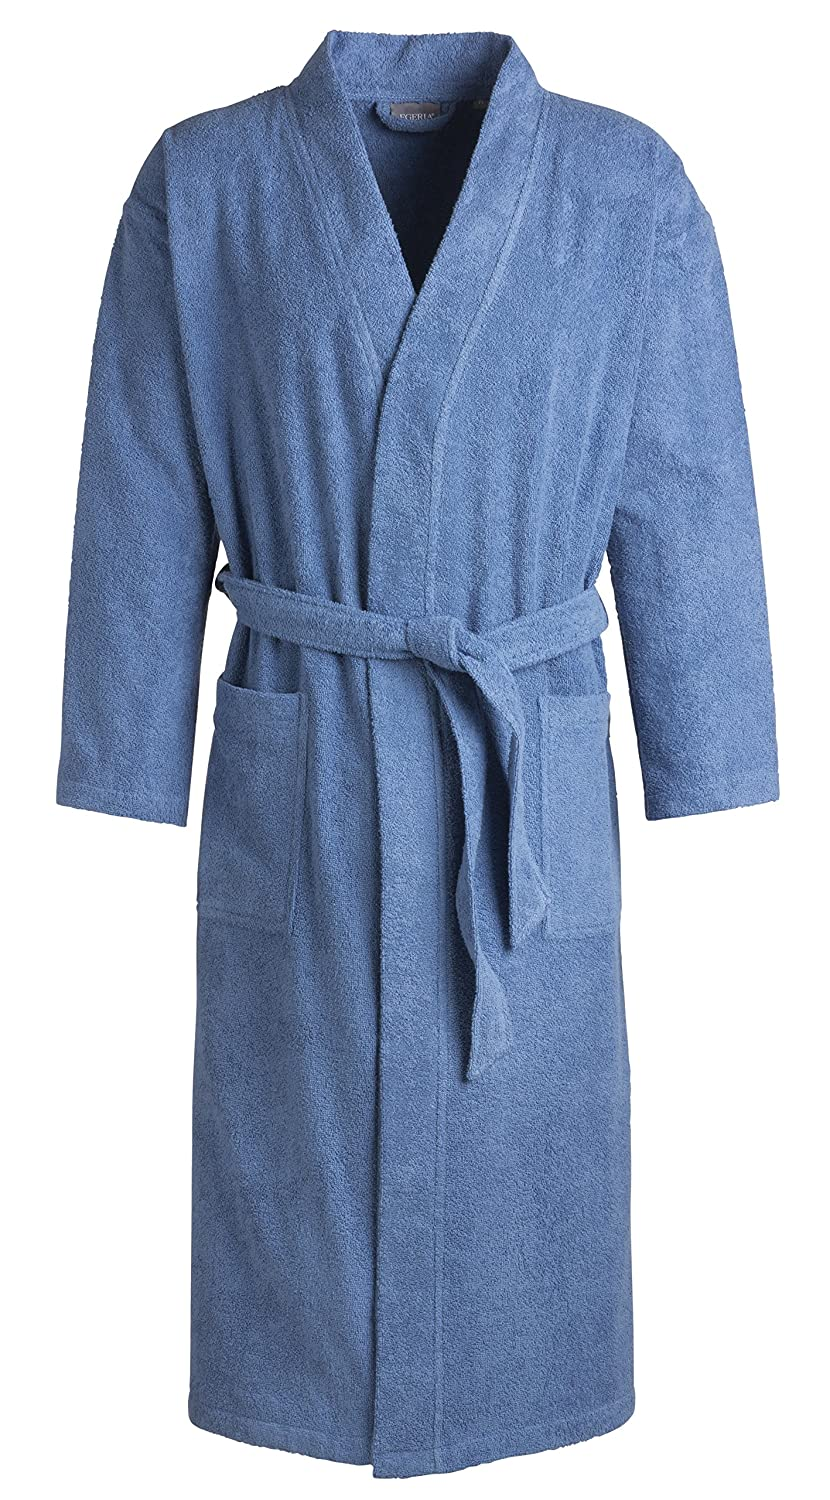 Egeria, Topas unisex bathrobe in kimono style, for men and women, Cotton, Black, Small 011008